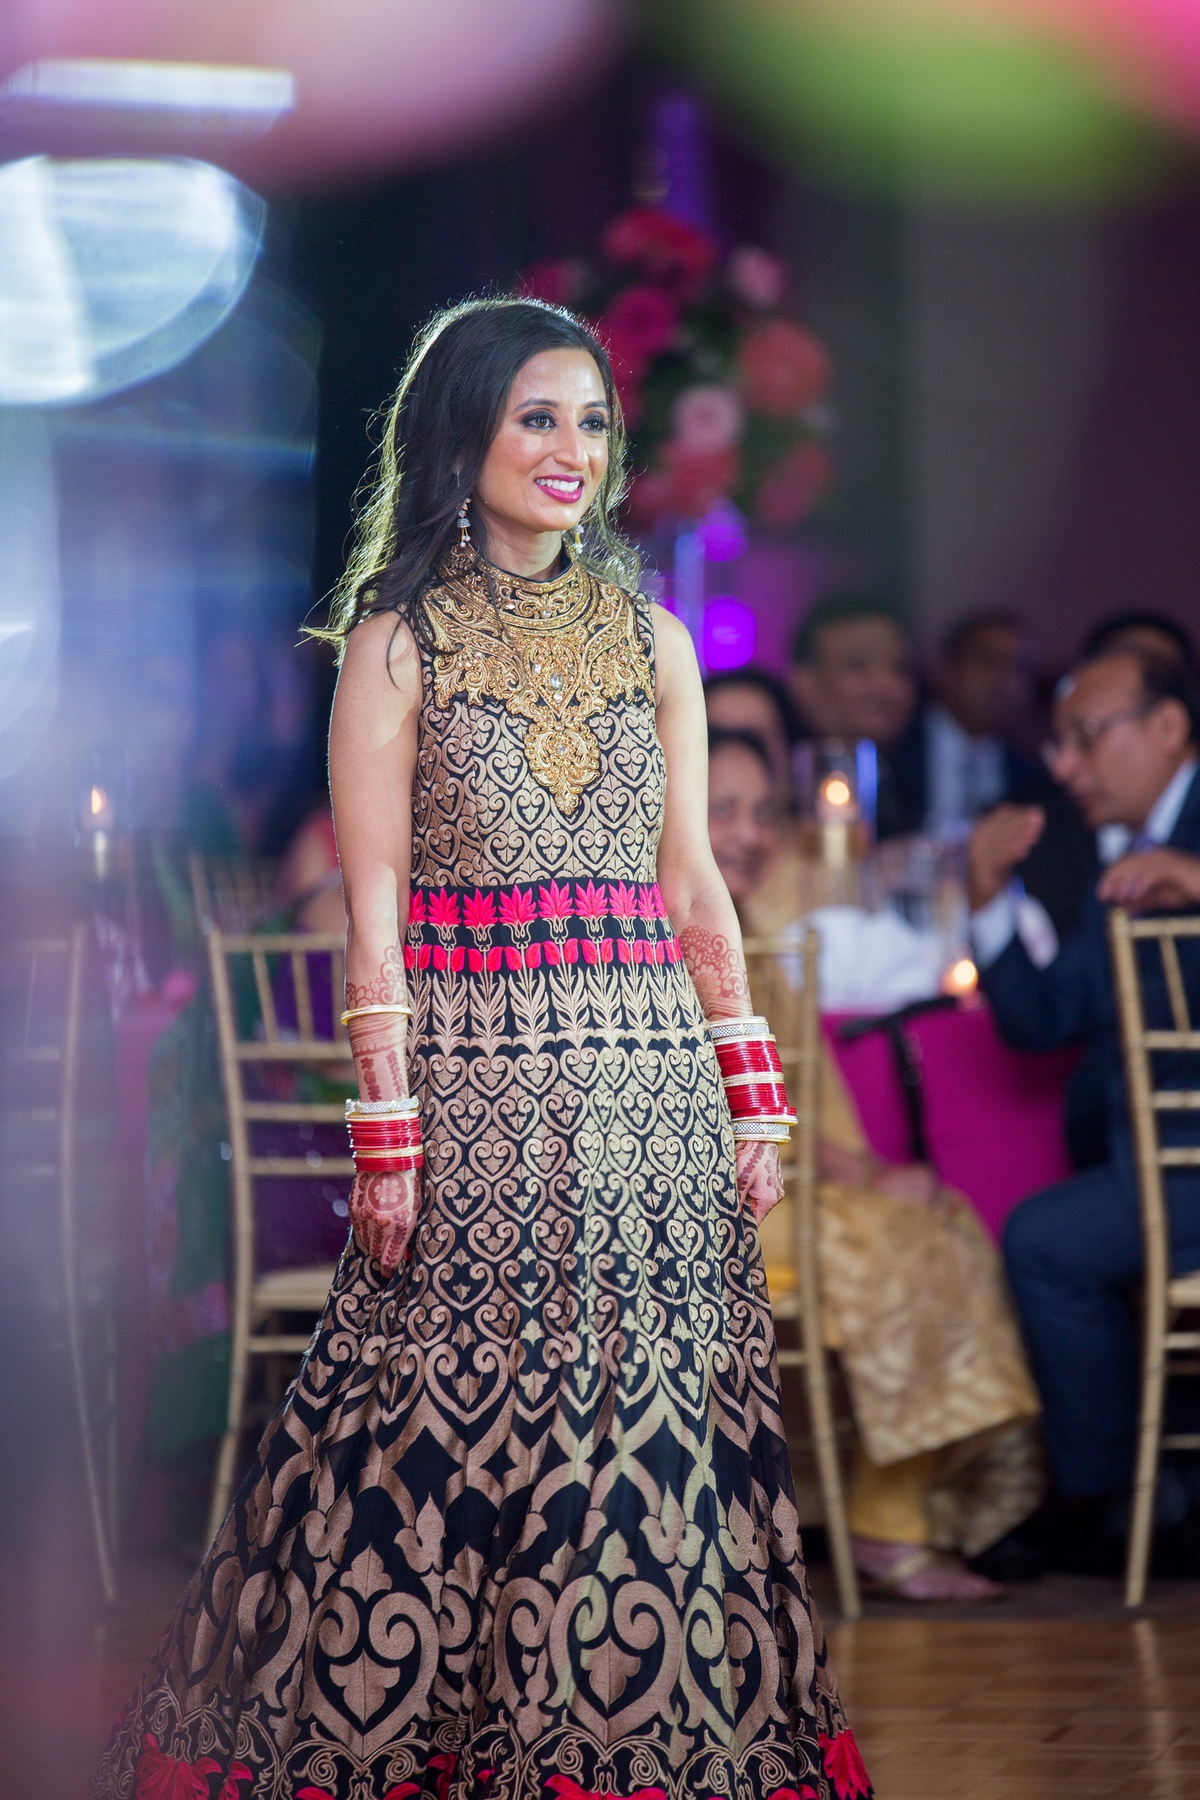 Le Cape Weddings - South Asian Wedding - Chicago Wedding Photographer P&V-66-2.jpg